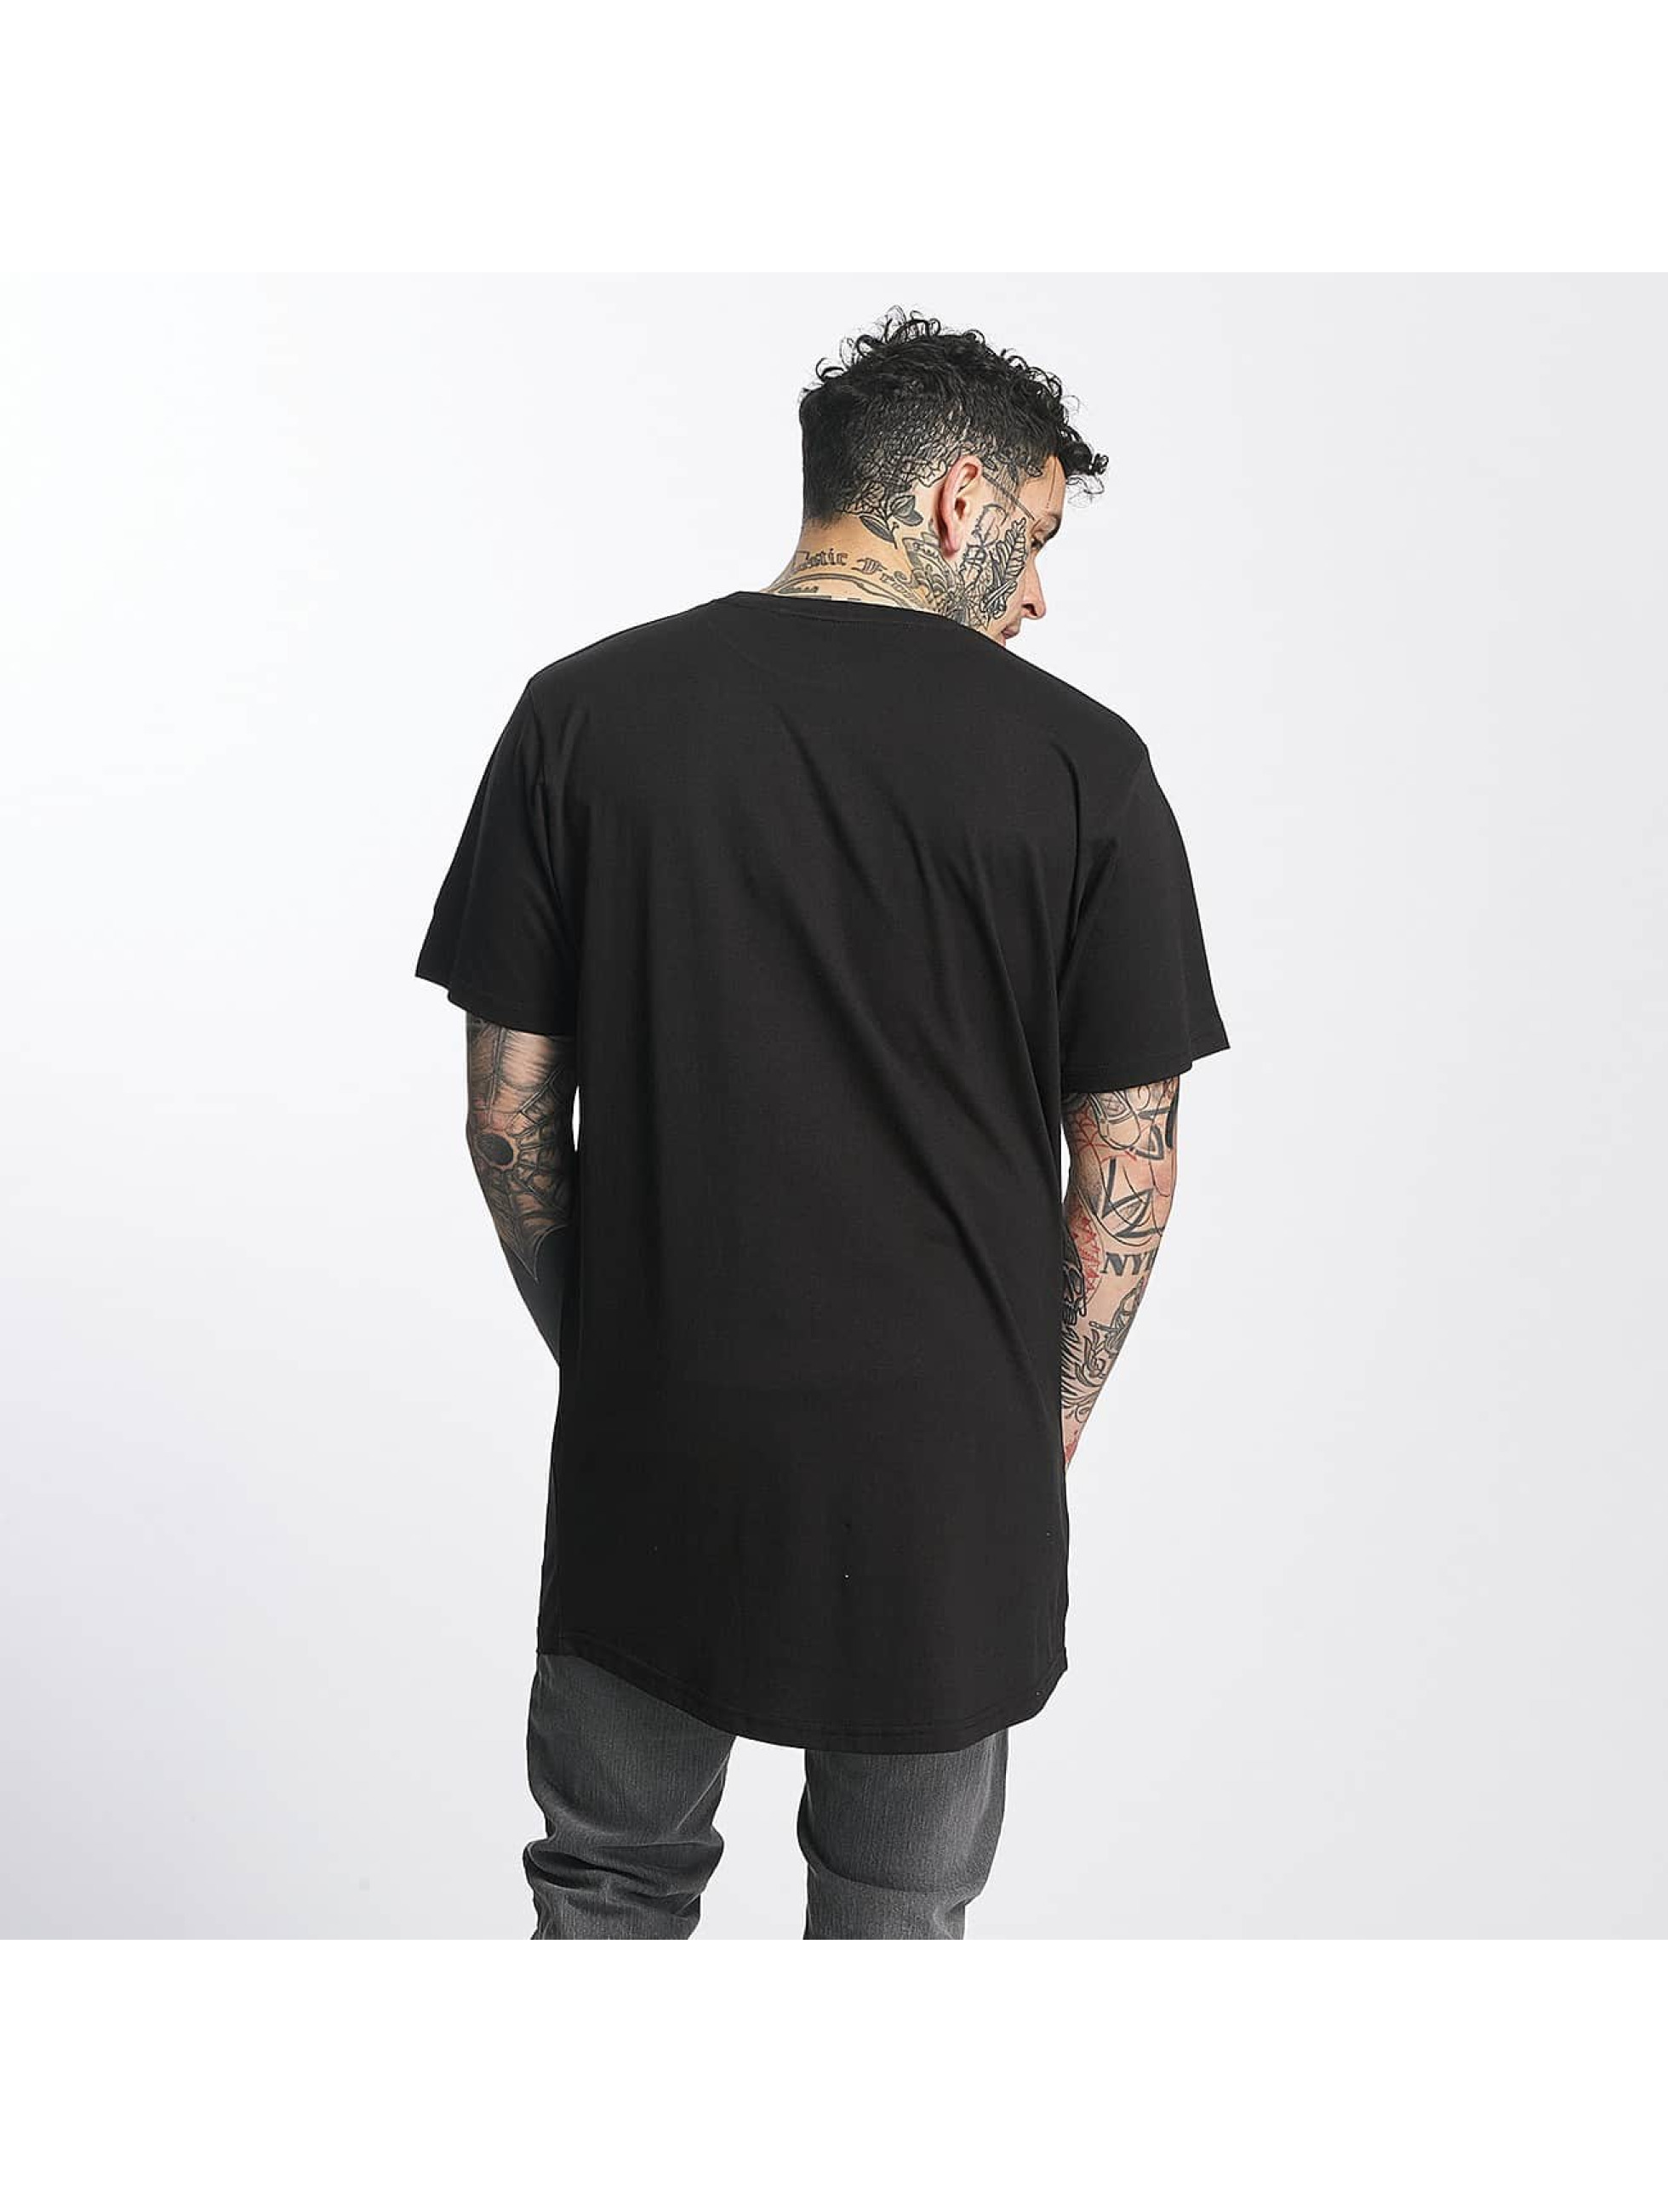 Tuffskull Tall Tees Nothing svart